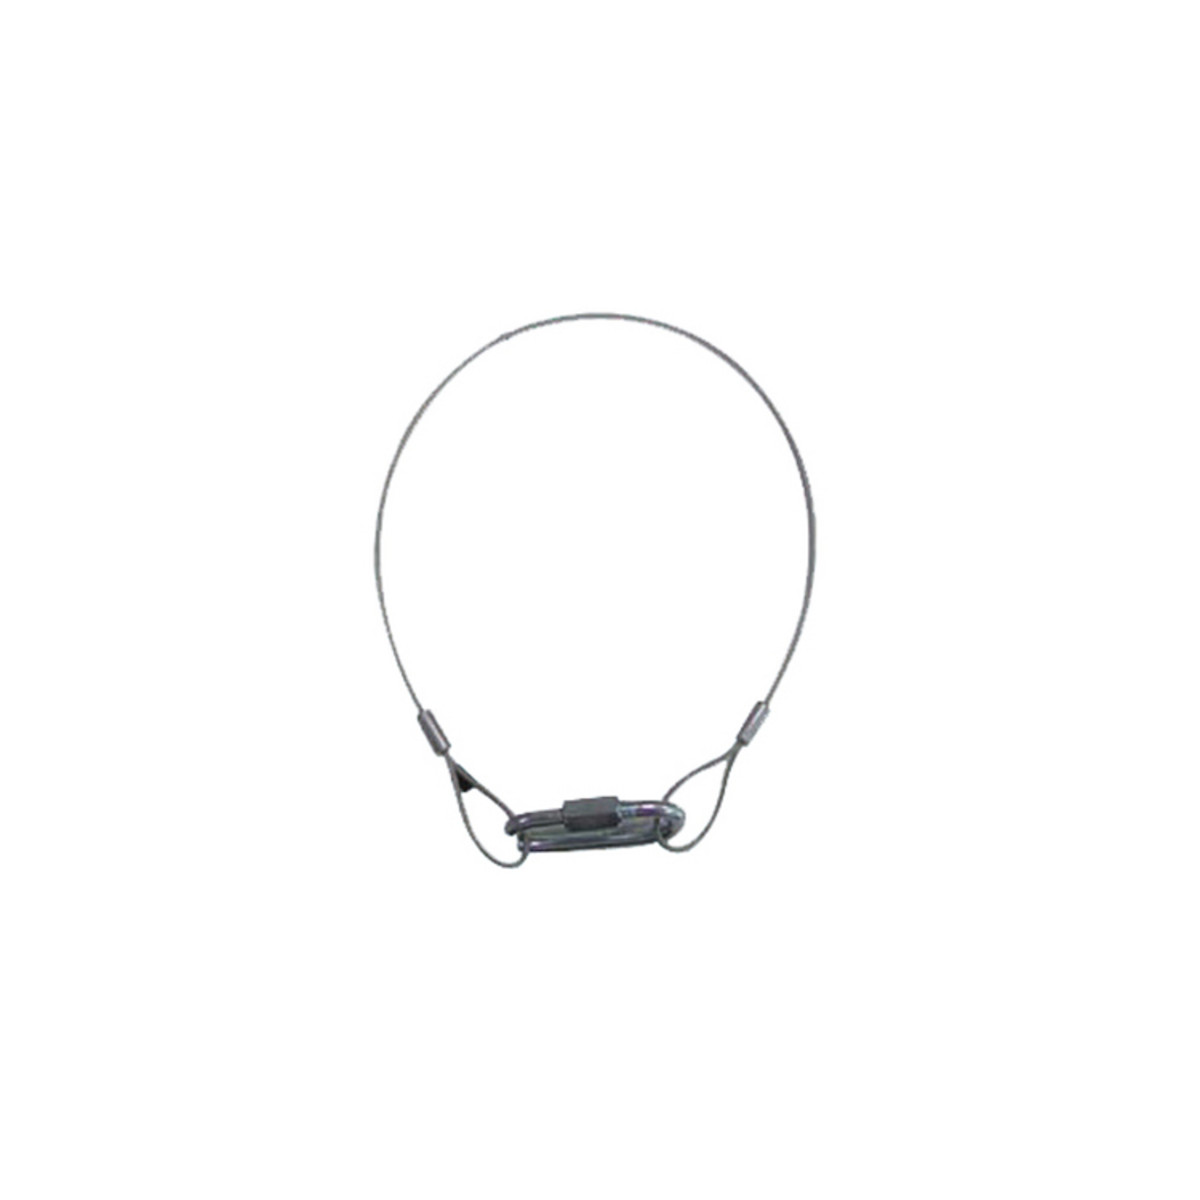 Image of 3mm Lighting Security Wire 50cm